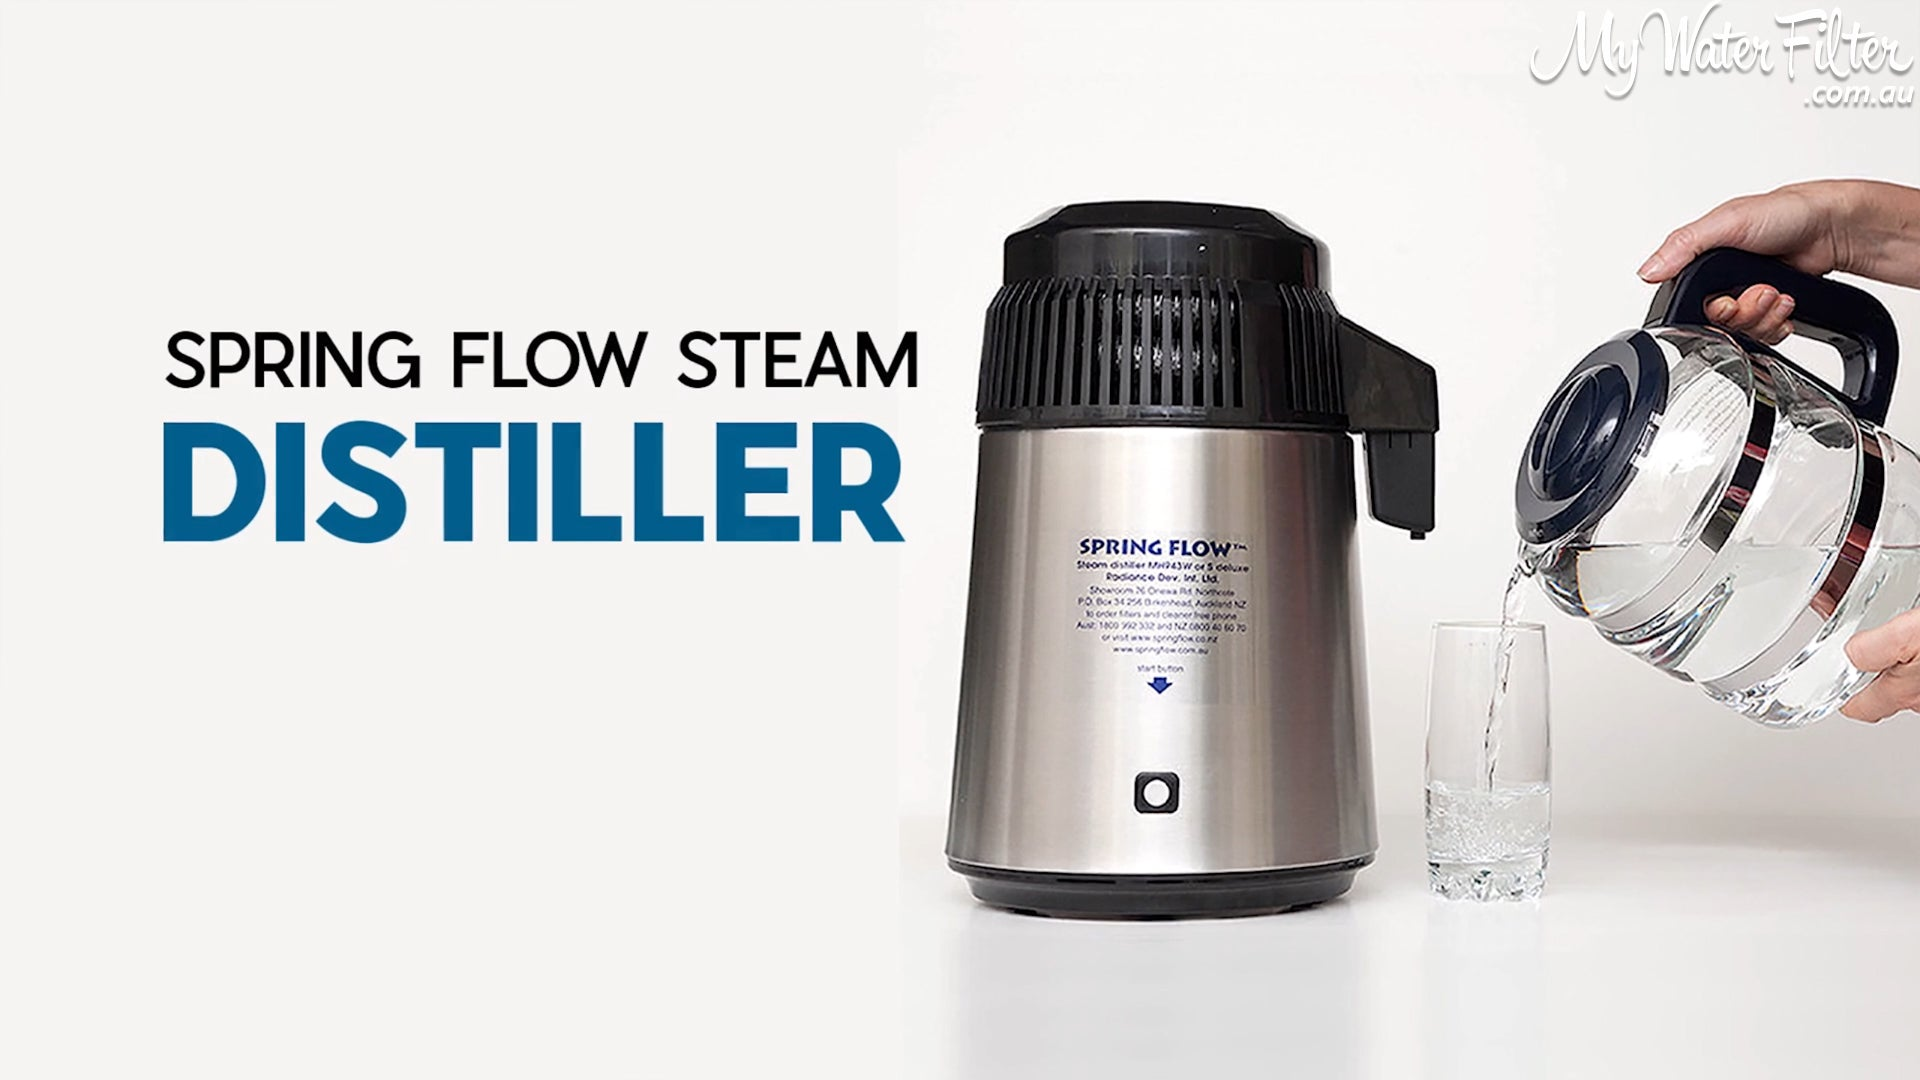 Spring Flow Steam Distiller